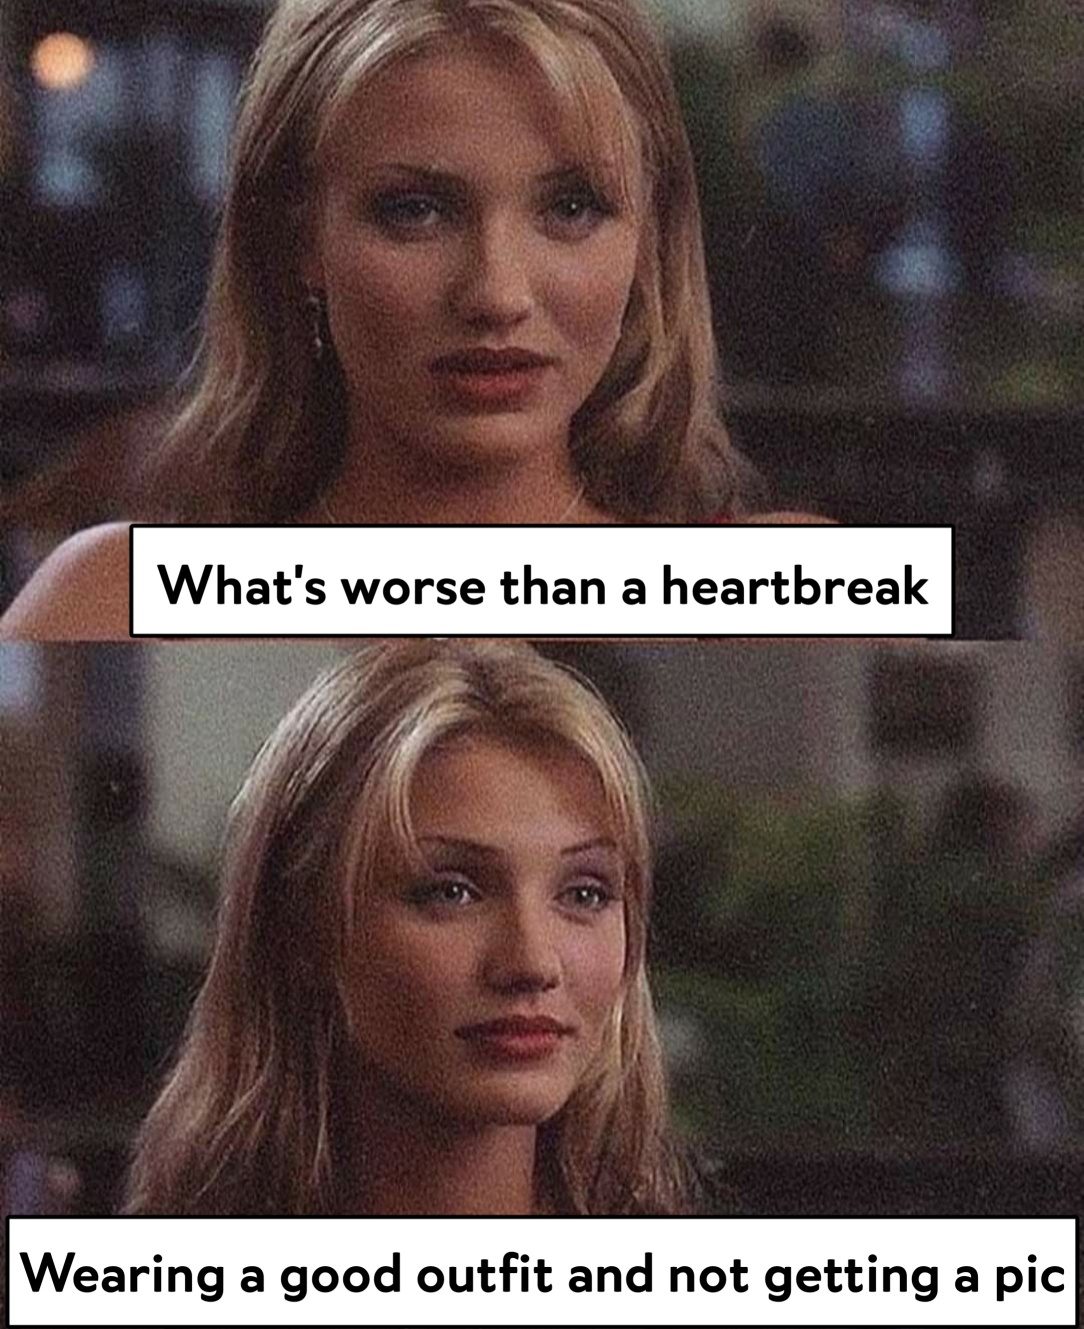 What's worse than a heartbreak?